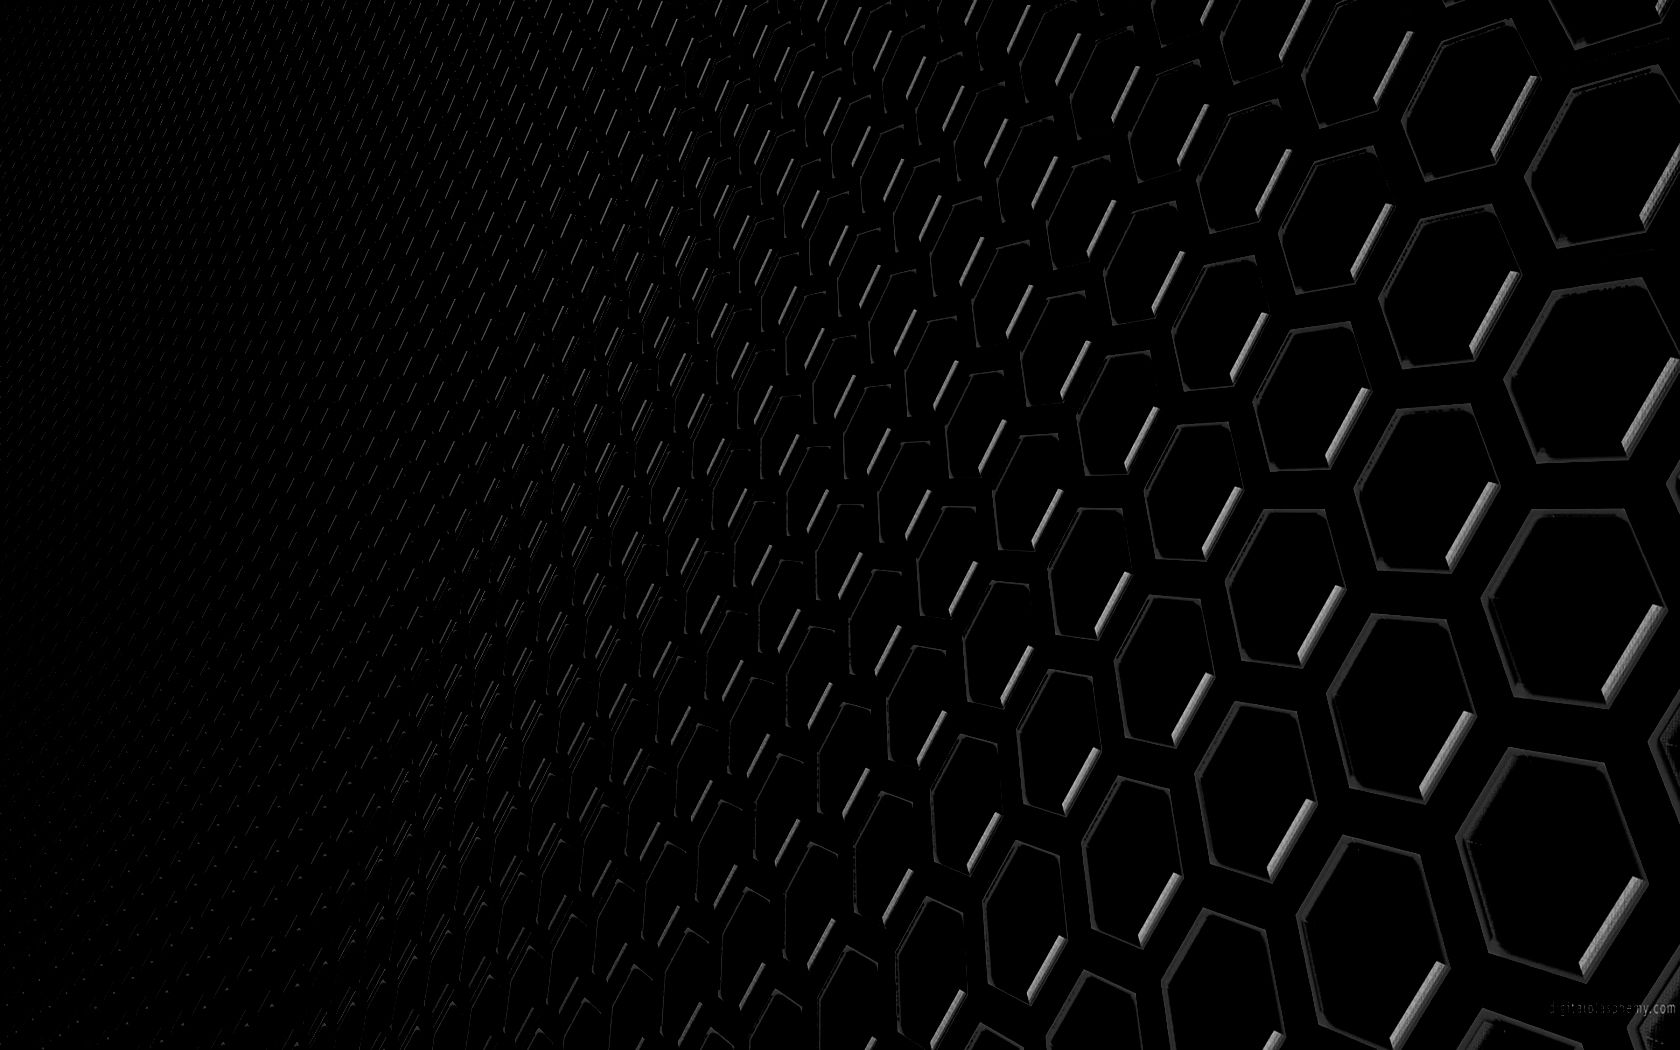 black pattern phone wallpaper - photo #27